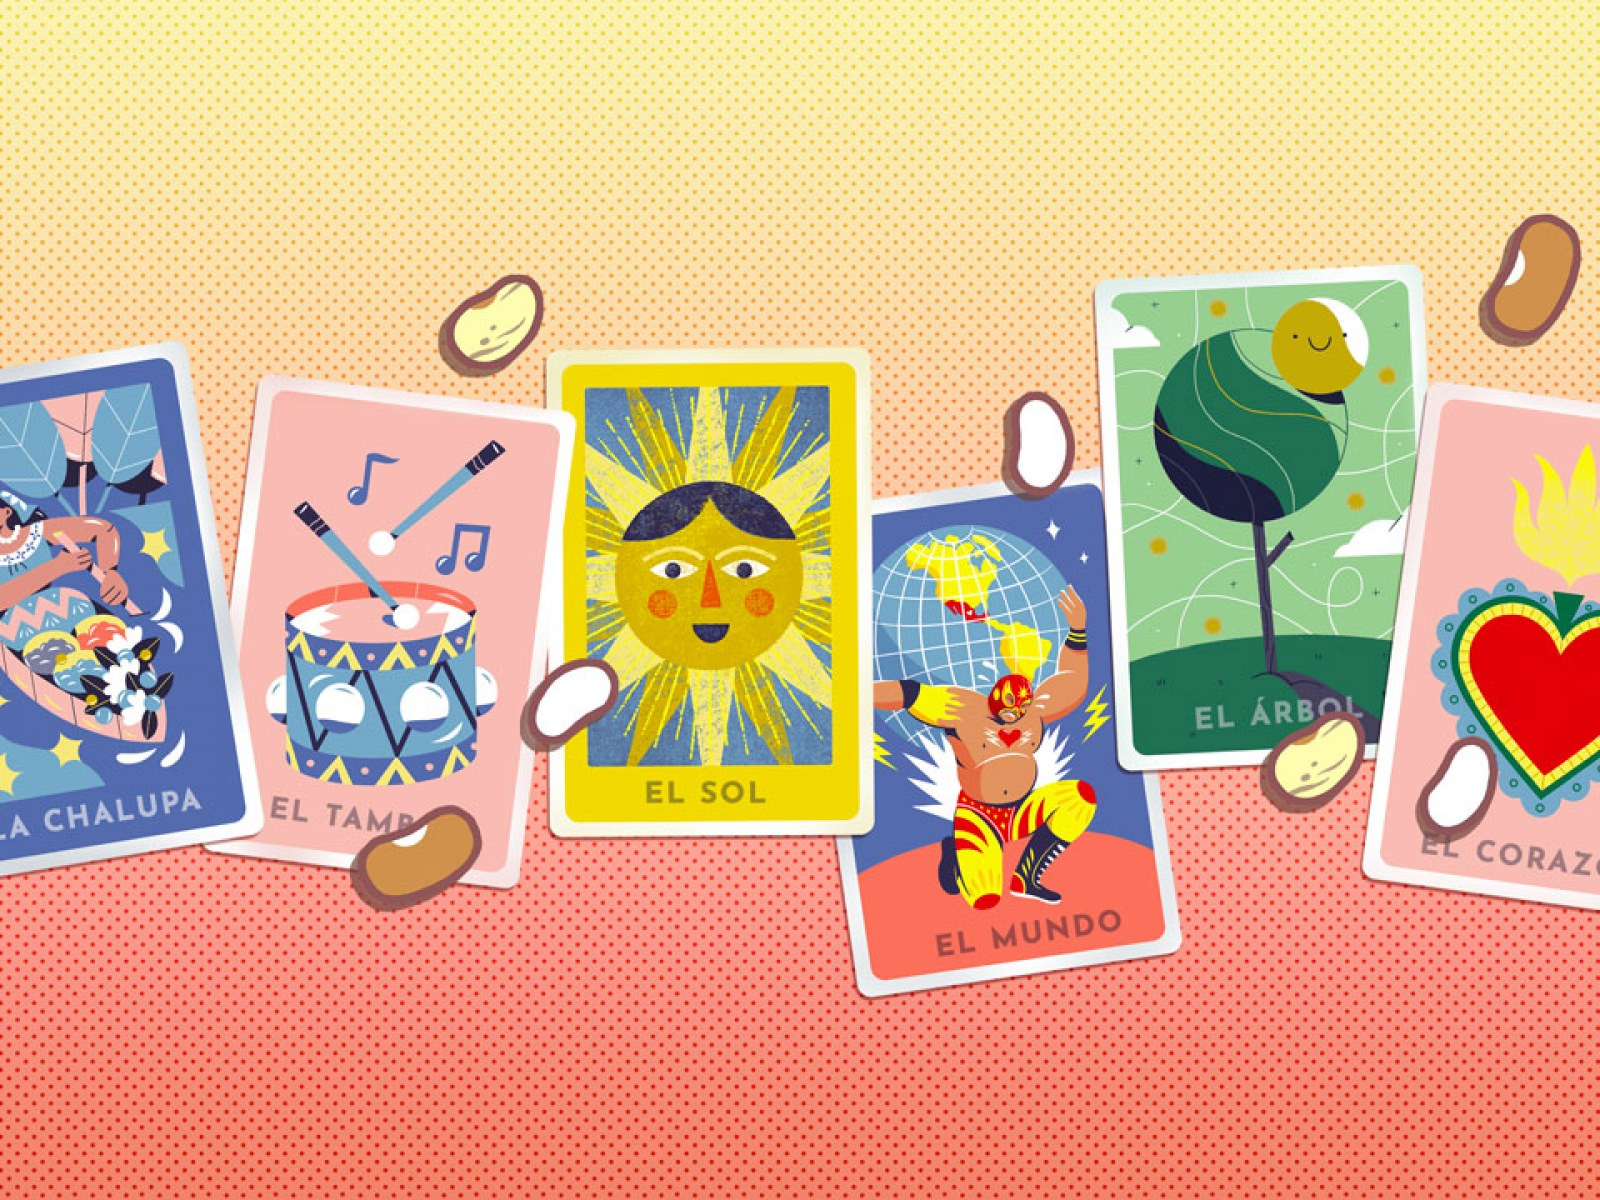 Popular Google Doodle Games Play Mexican Card Game Loteria With Friends In Today S Game